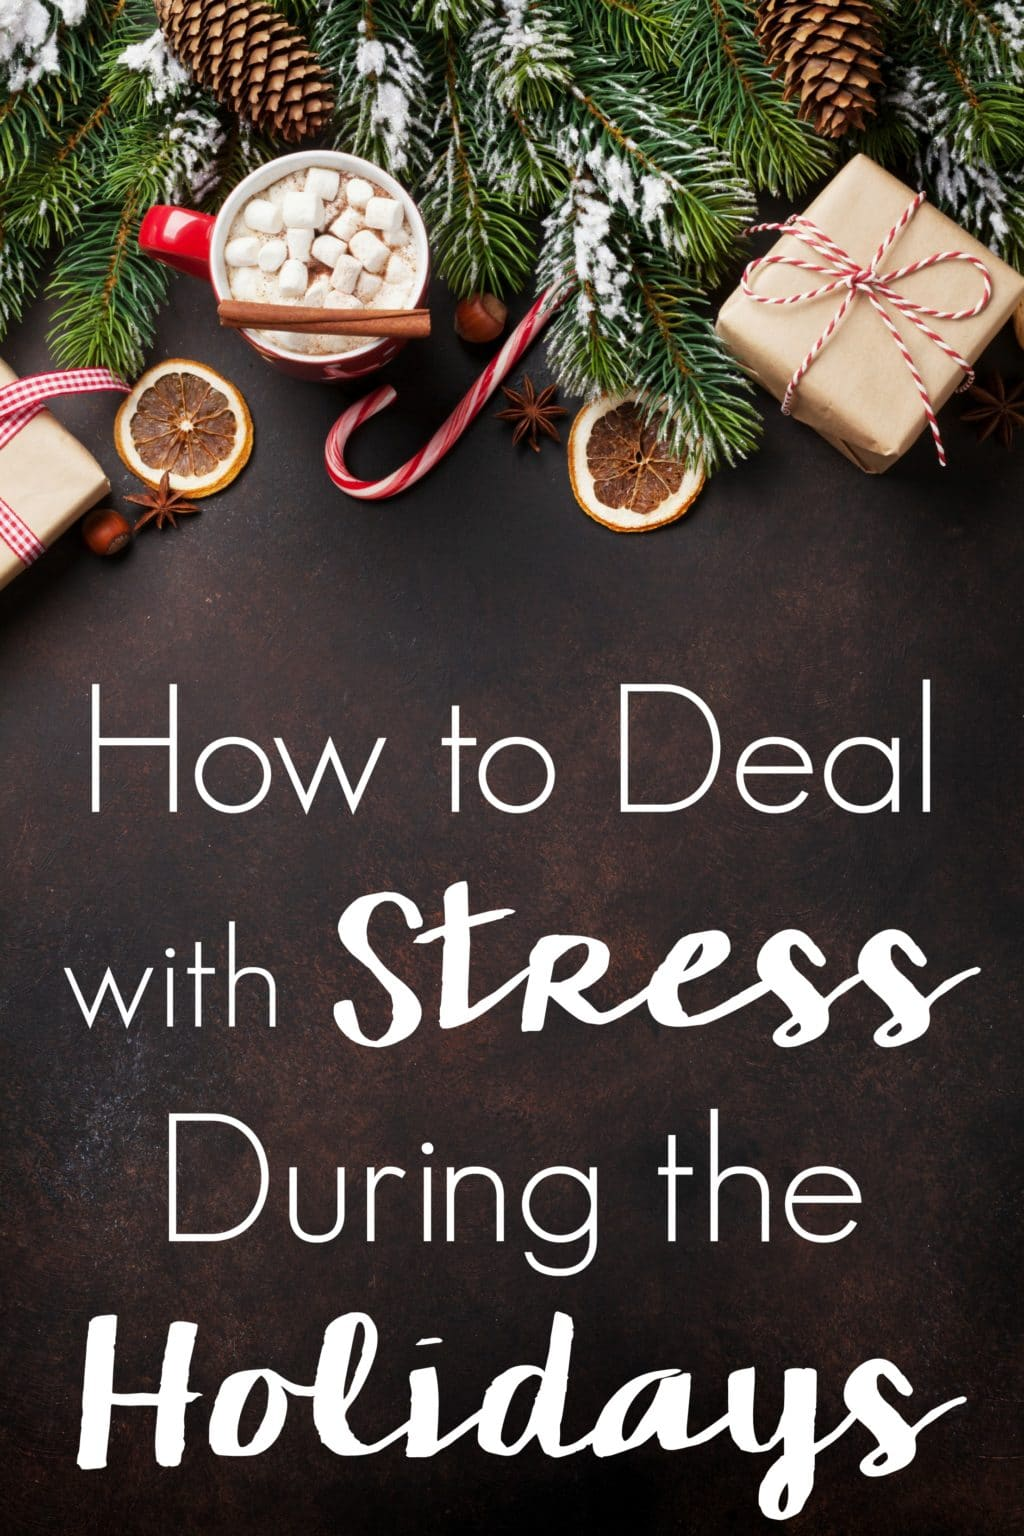 Learning how to deal with stress during the holidays before they arrive is the key to enjoying yourself during the busiest and most wonderful time of year!